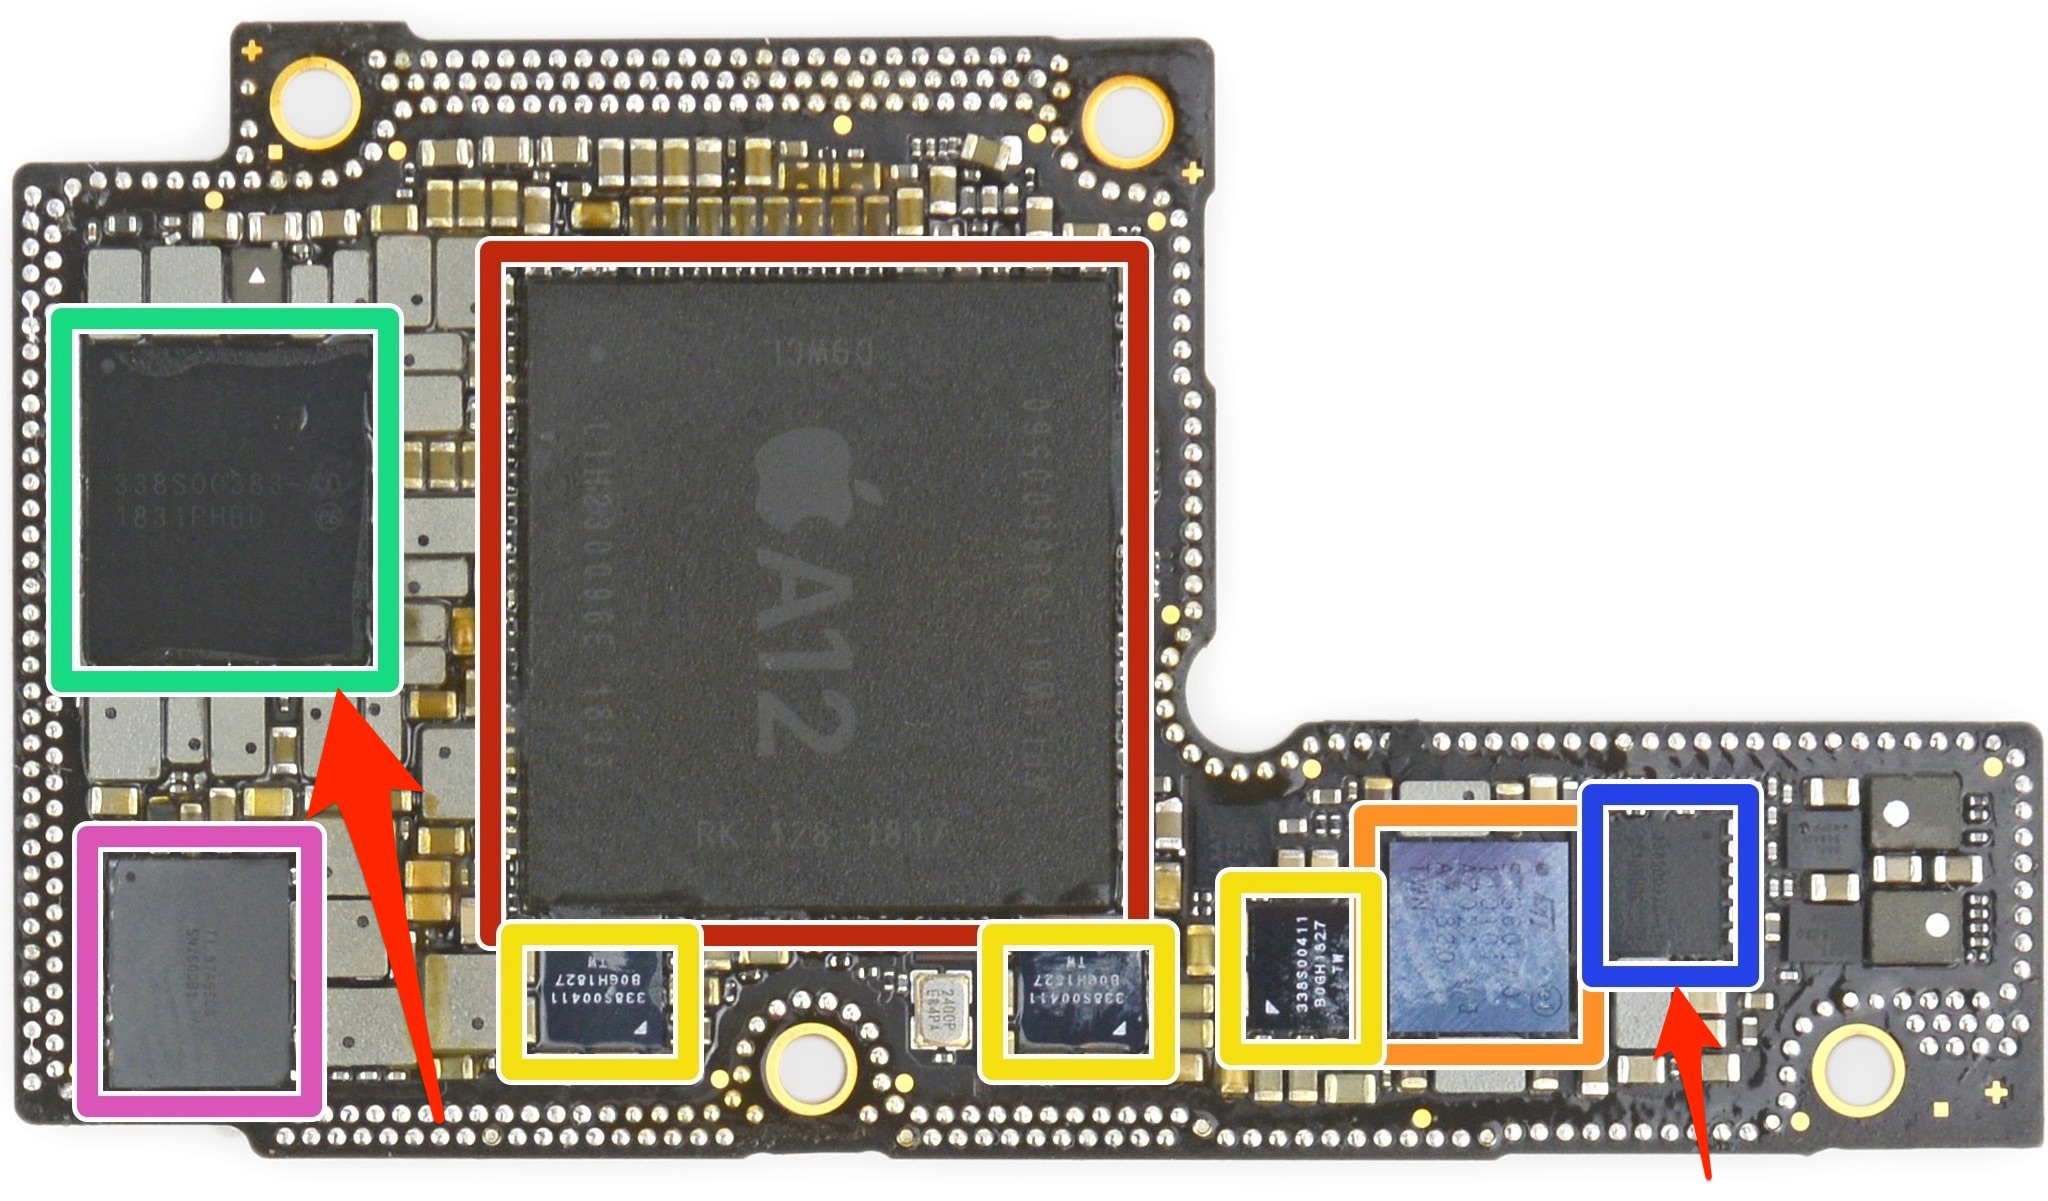 Apple Dialog deal - a teardown image showing the location of Dialog's power-management chips on the iPhone XS logic board